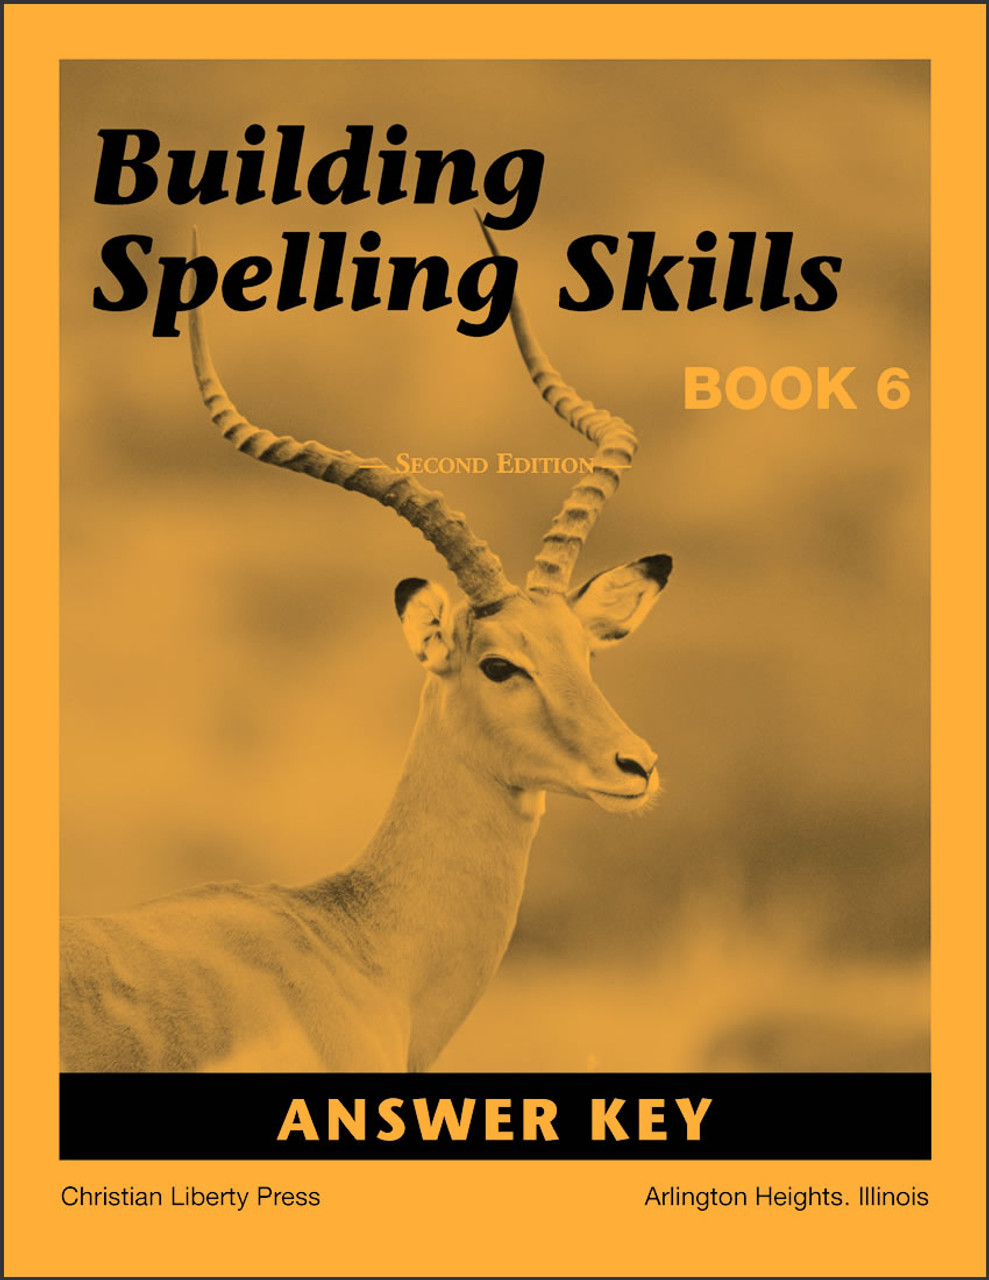 Building Spelling Skills: Book 6, 2nd edition - Answer Key